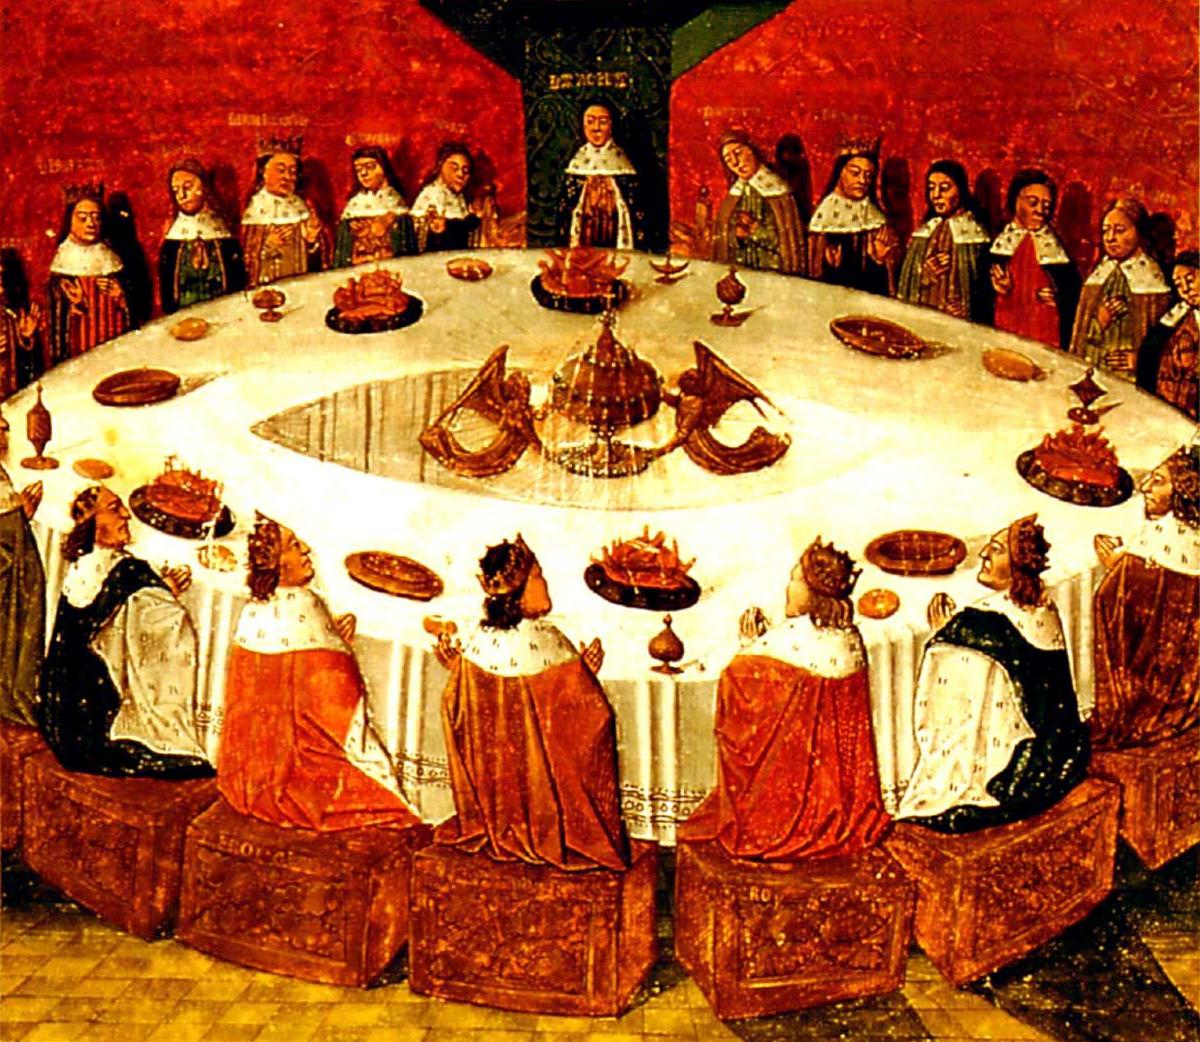 King Arthur and the Knights of the Round Tablejpg